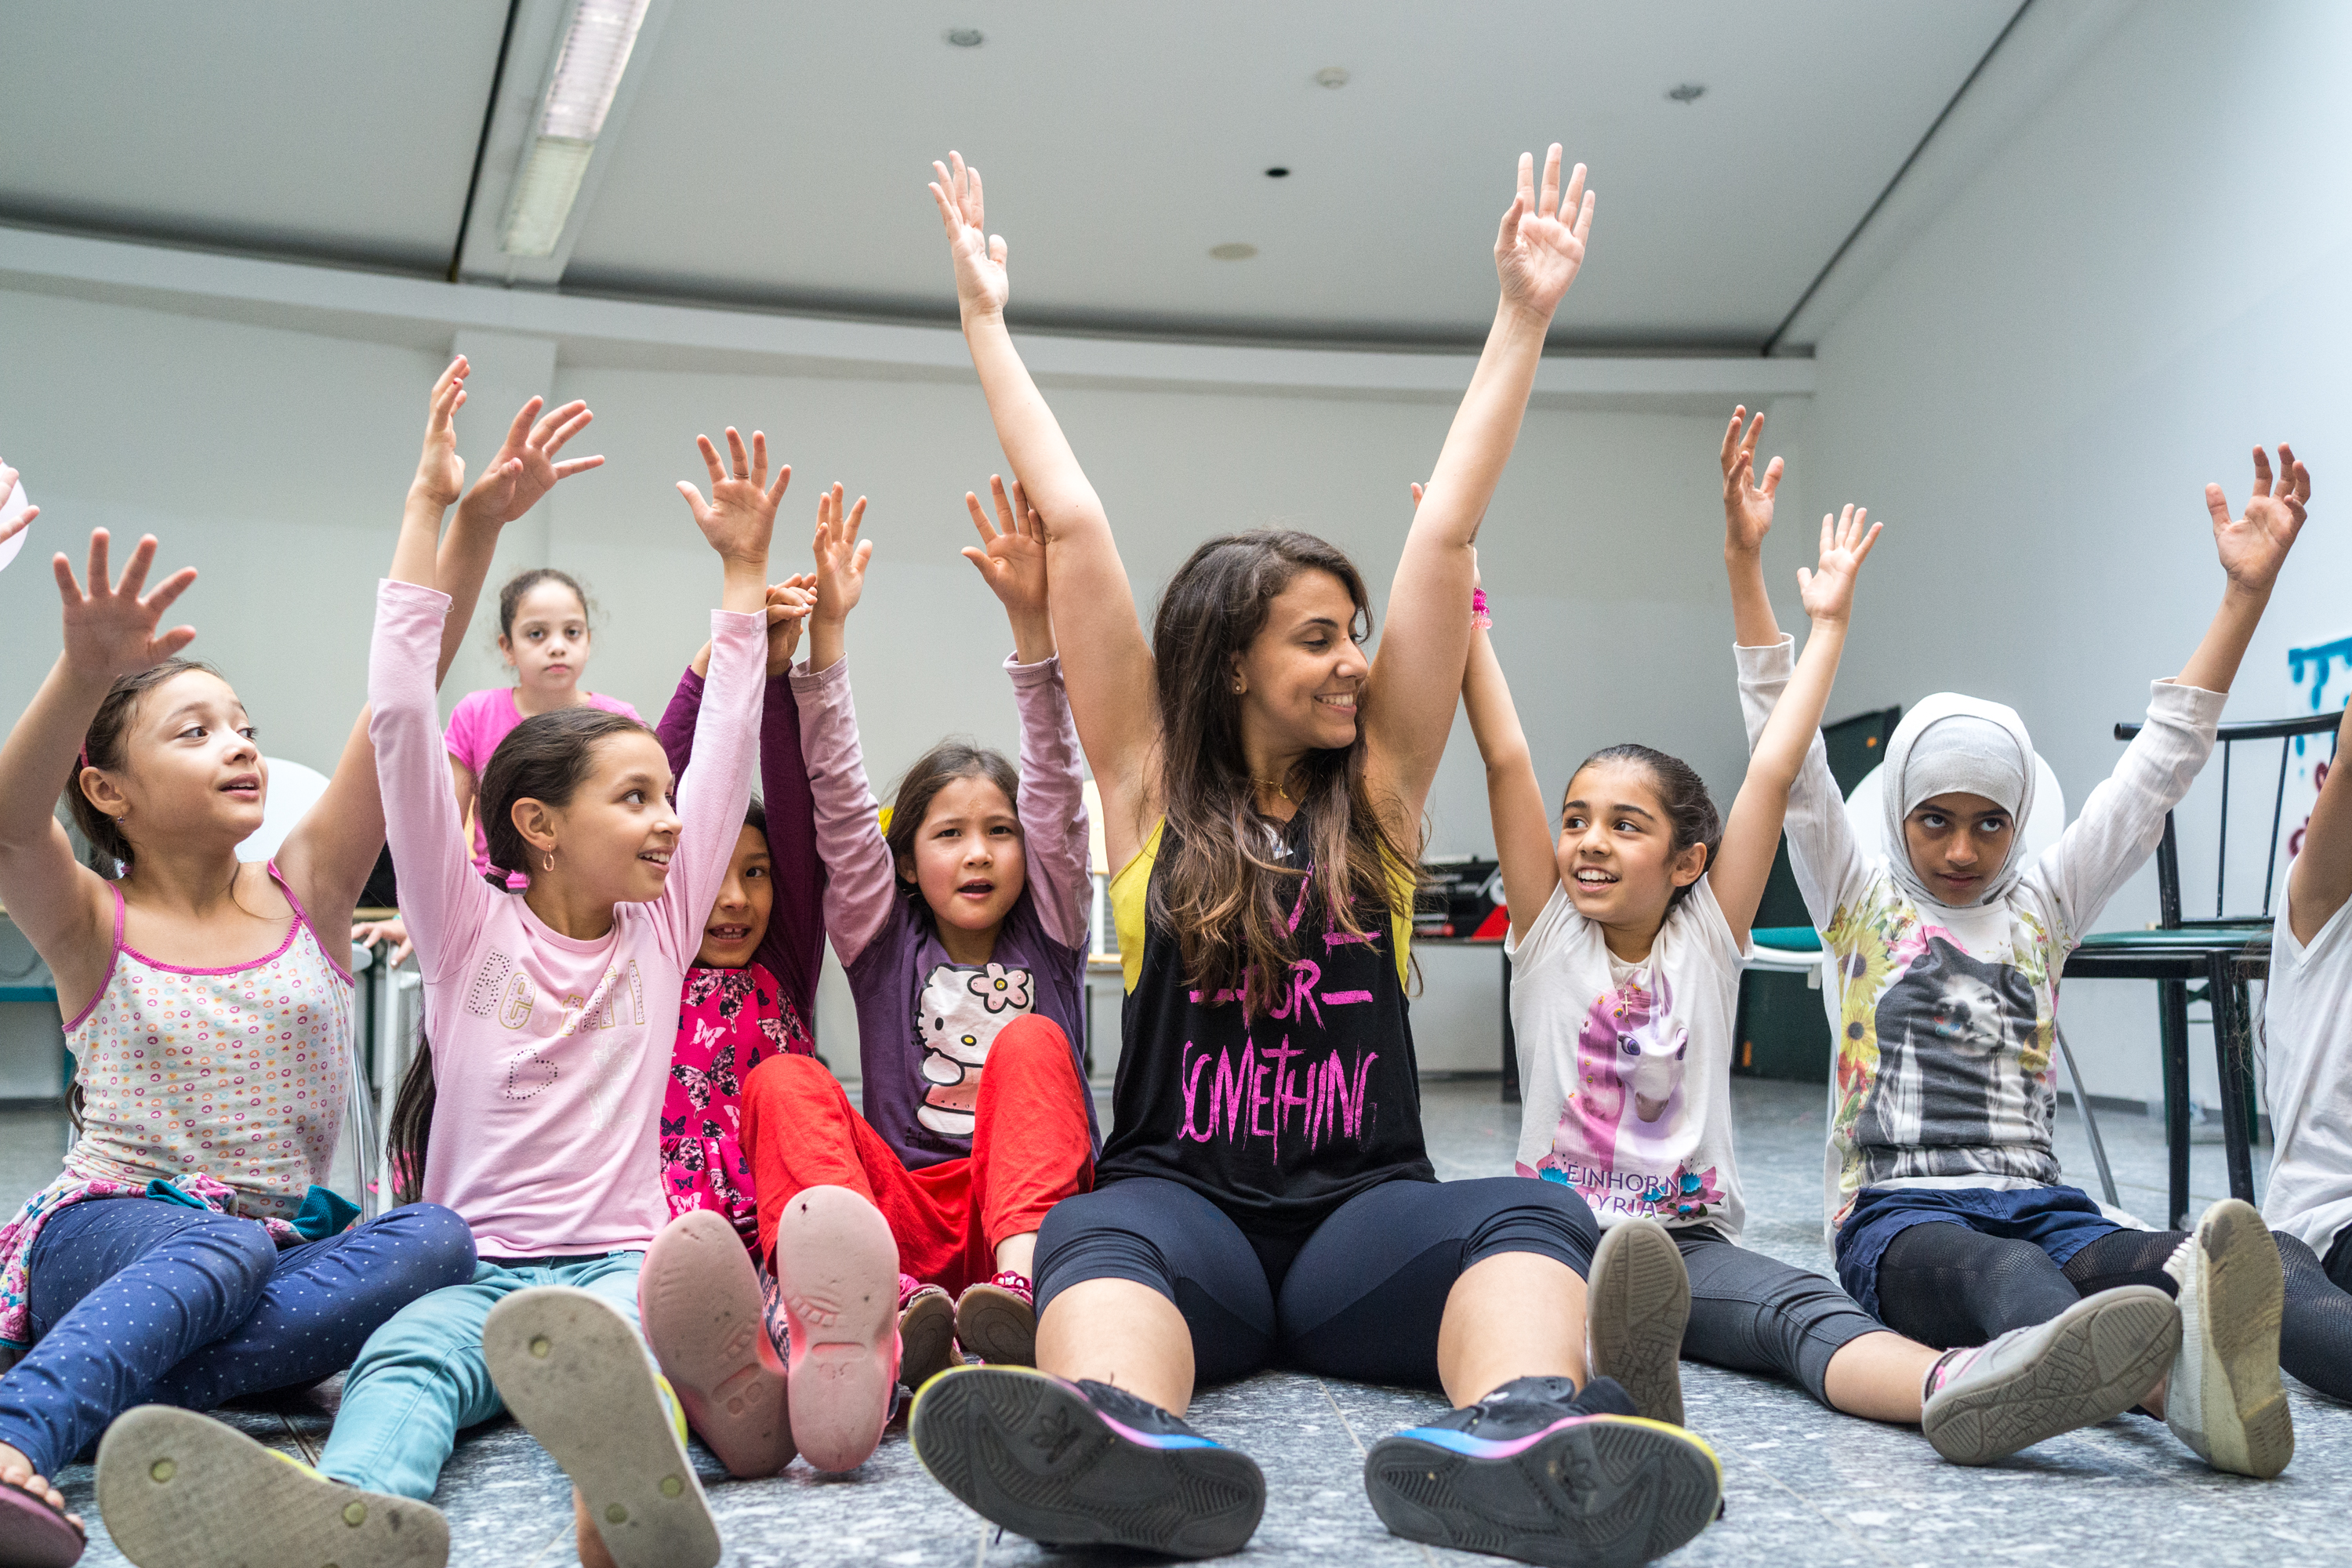 Joining these girls in their dance class was a heartwarming experience.